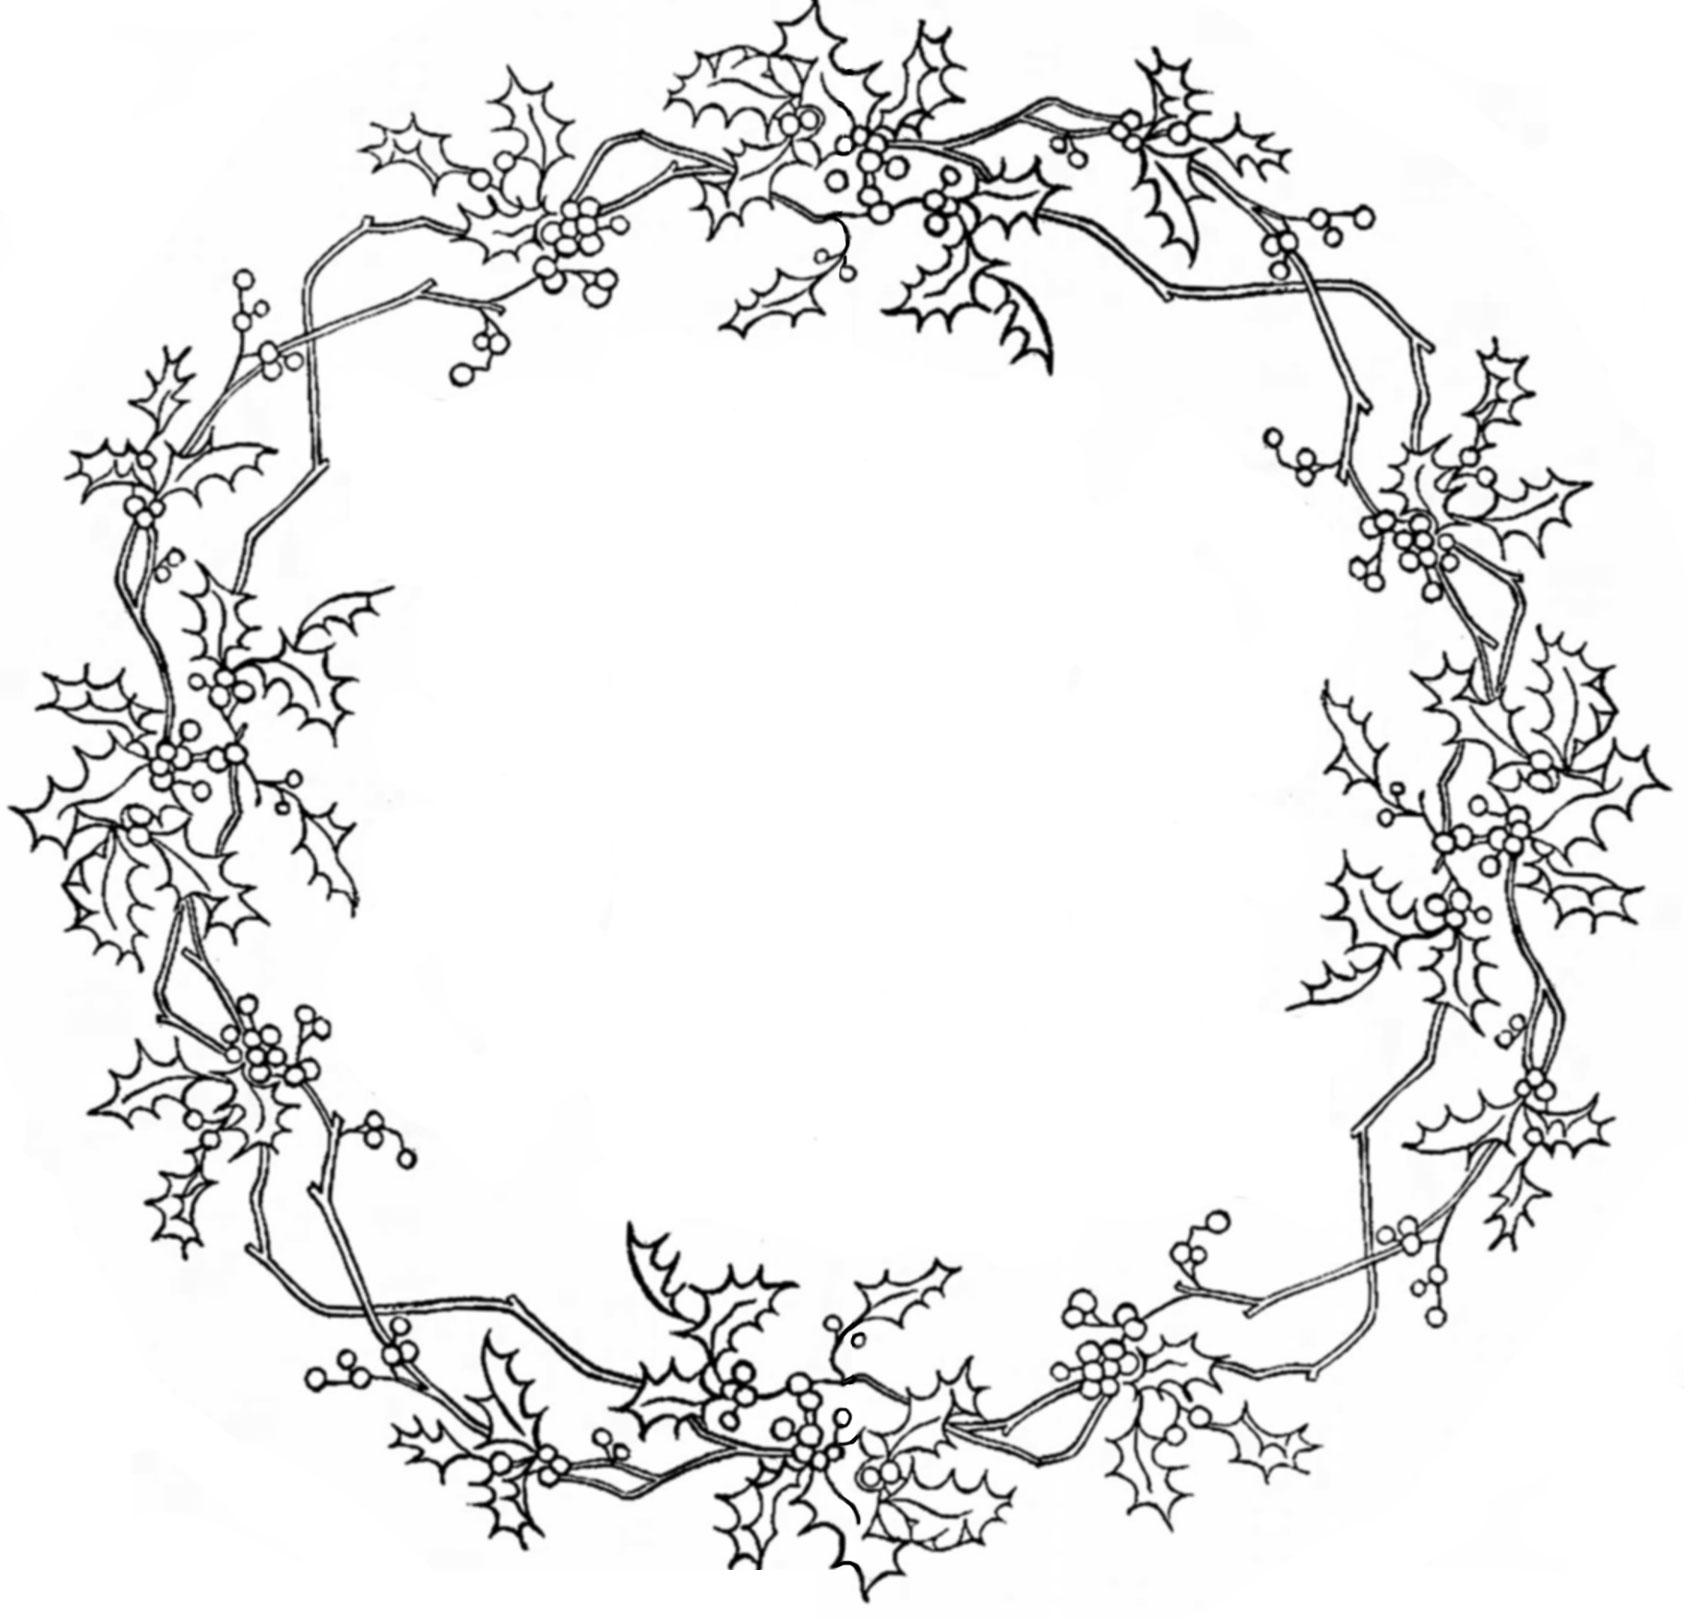 Antique Embroidery Designs